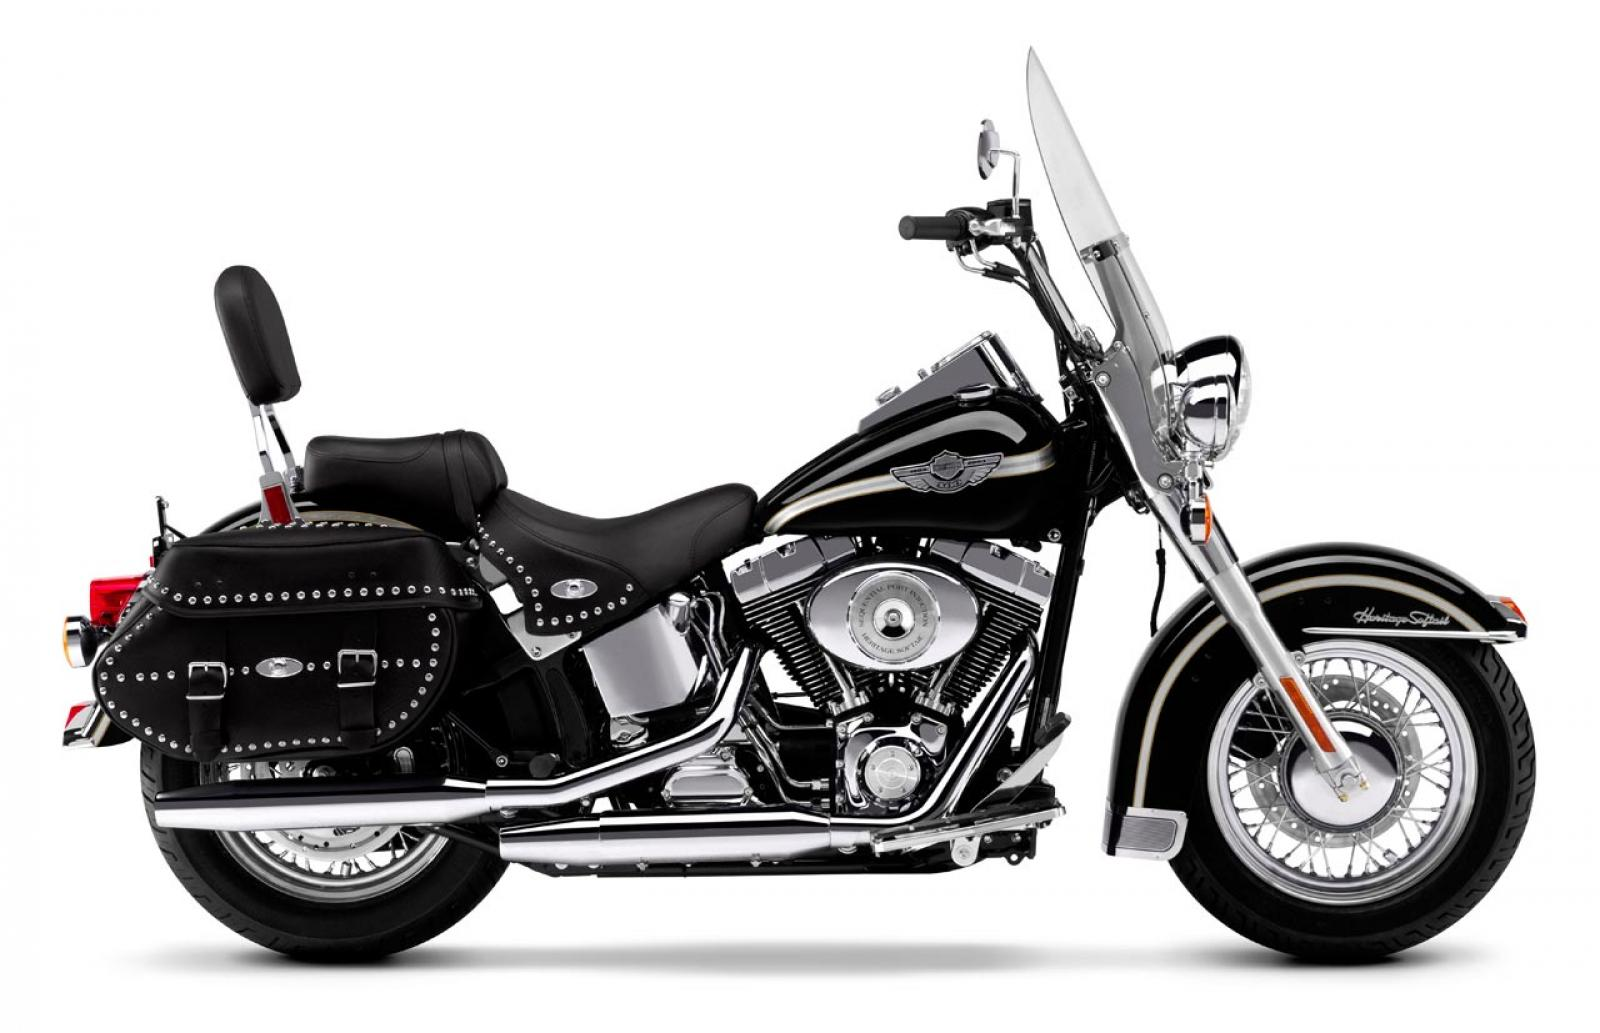 1998 harley davidson softail heritage classic moto. Black Bedroom Furniture Sets. Home Design Ideas